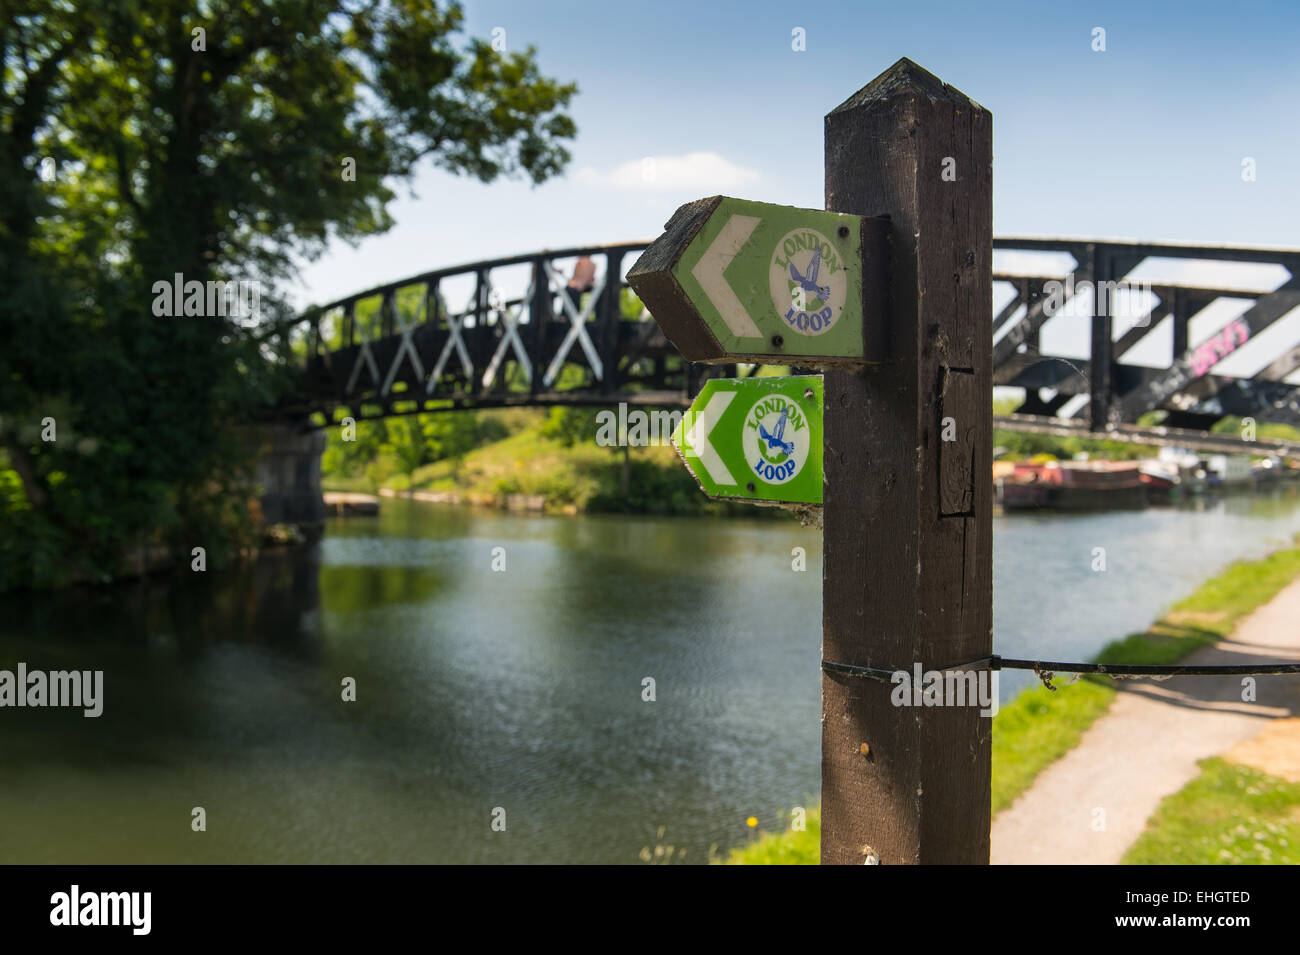 London Outer Orbital Path - London Loop - Stock Image